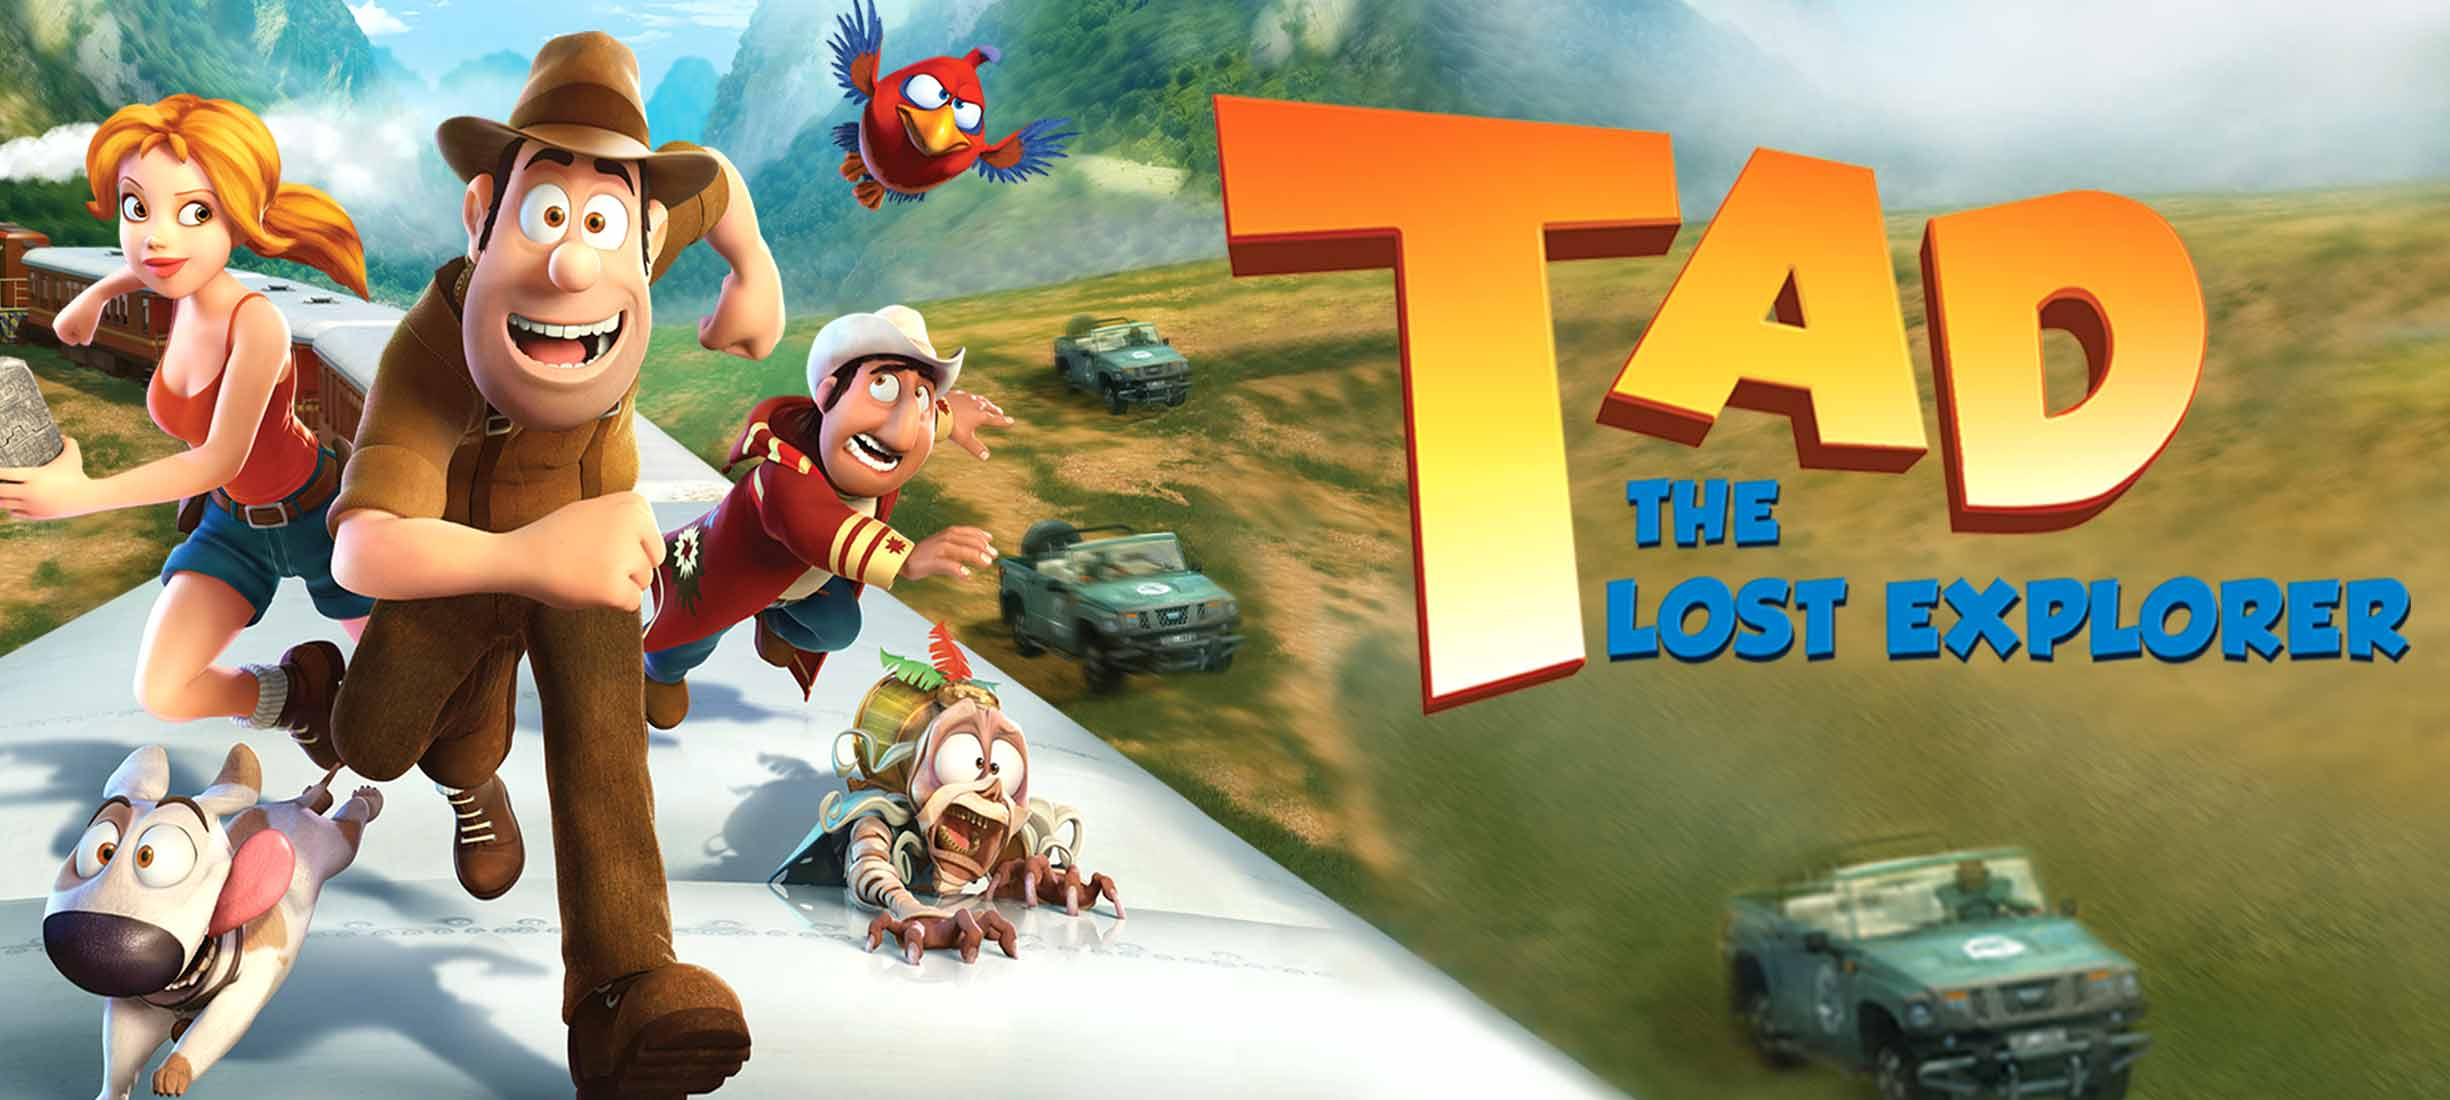 Watch][tad, the lost explorer (2012)]movie. Streaming.